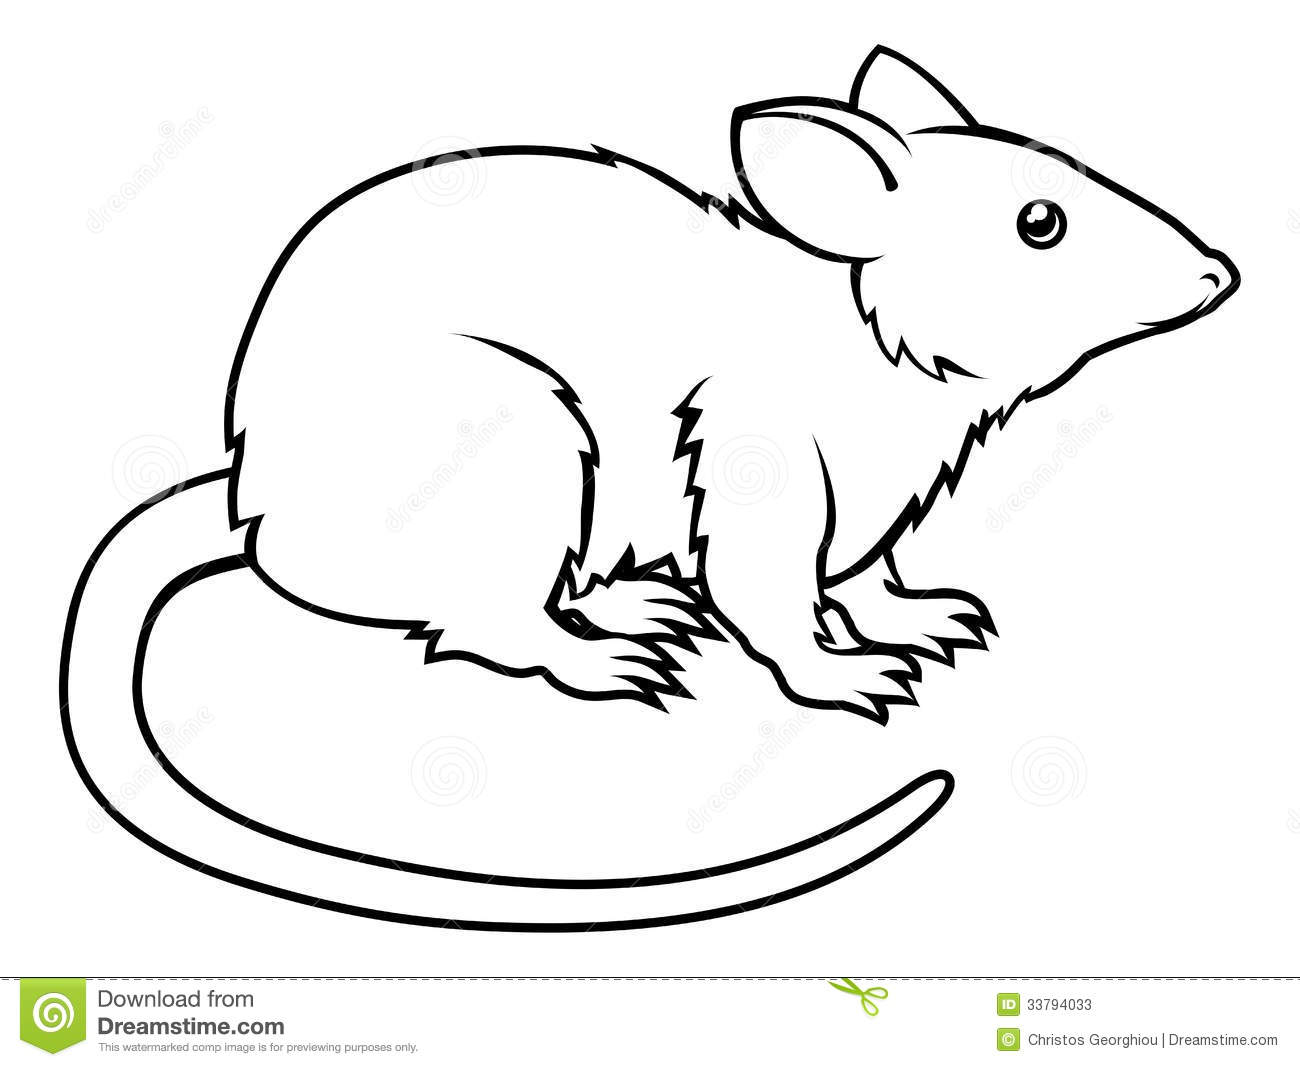 An illustration of a stylised rat perhaps a rat tattoo.